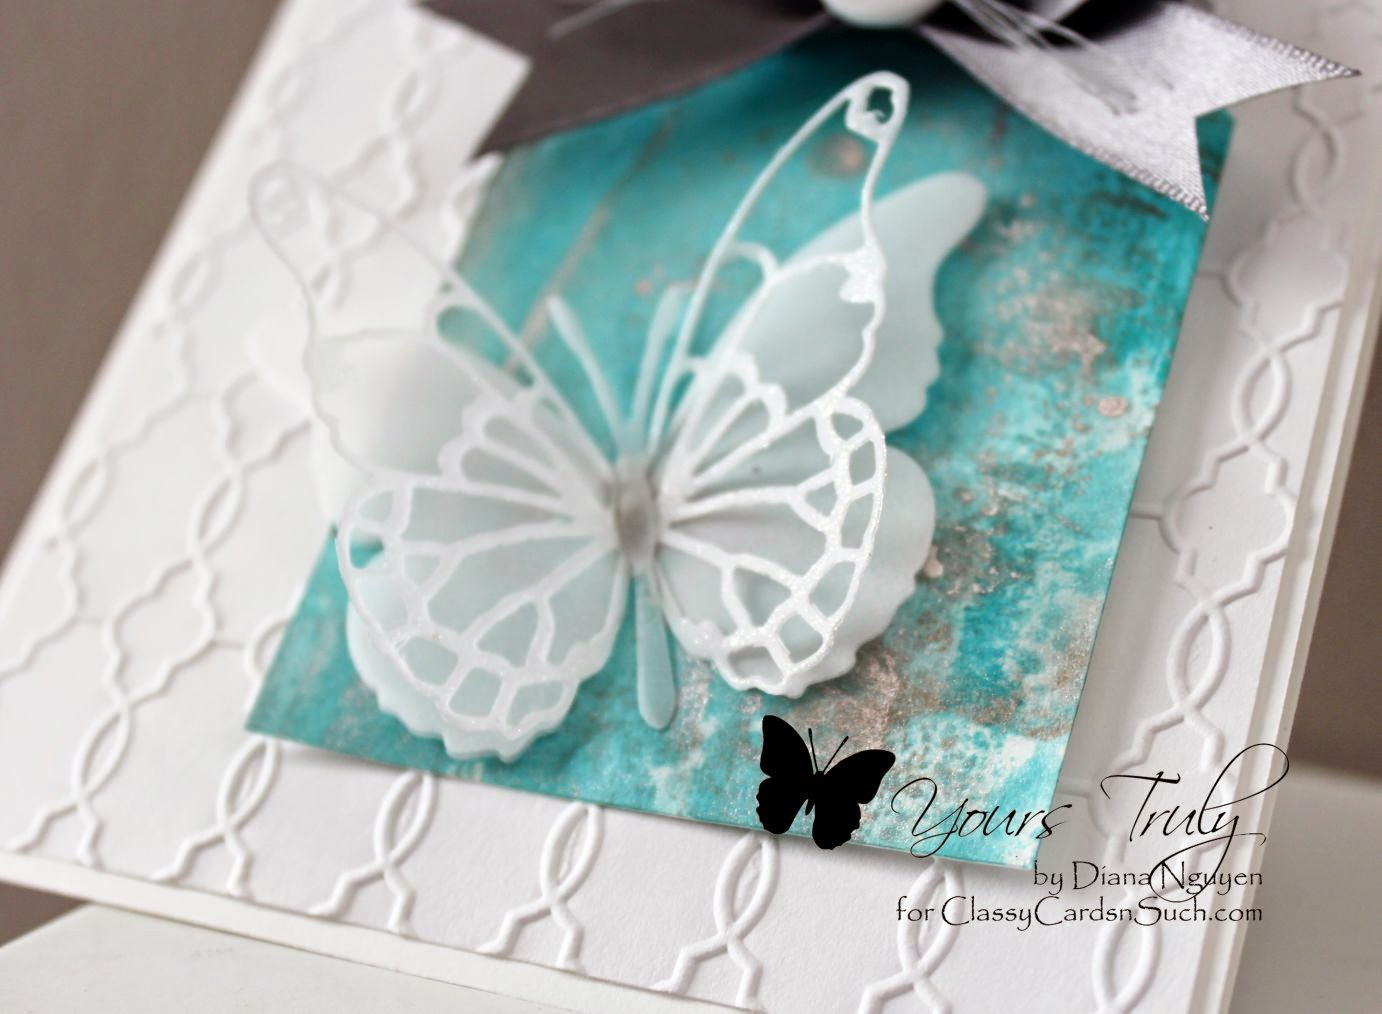 Diana Nguyen, butterfly, tag, cards, memory box, tim holtz